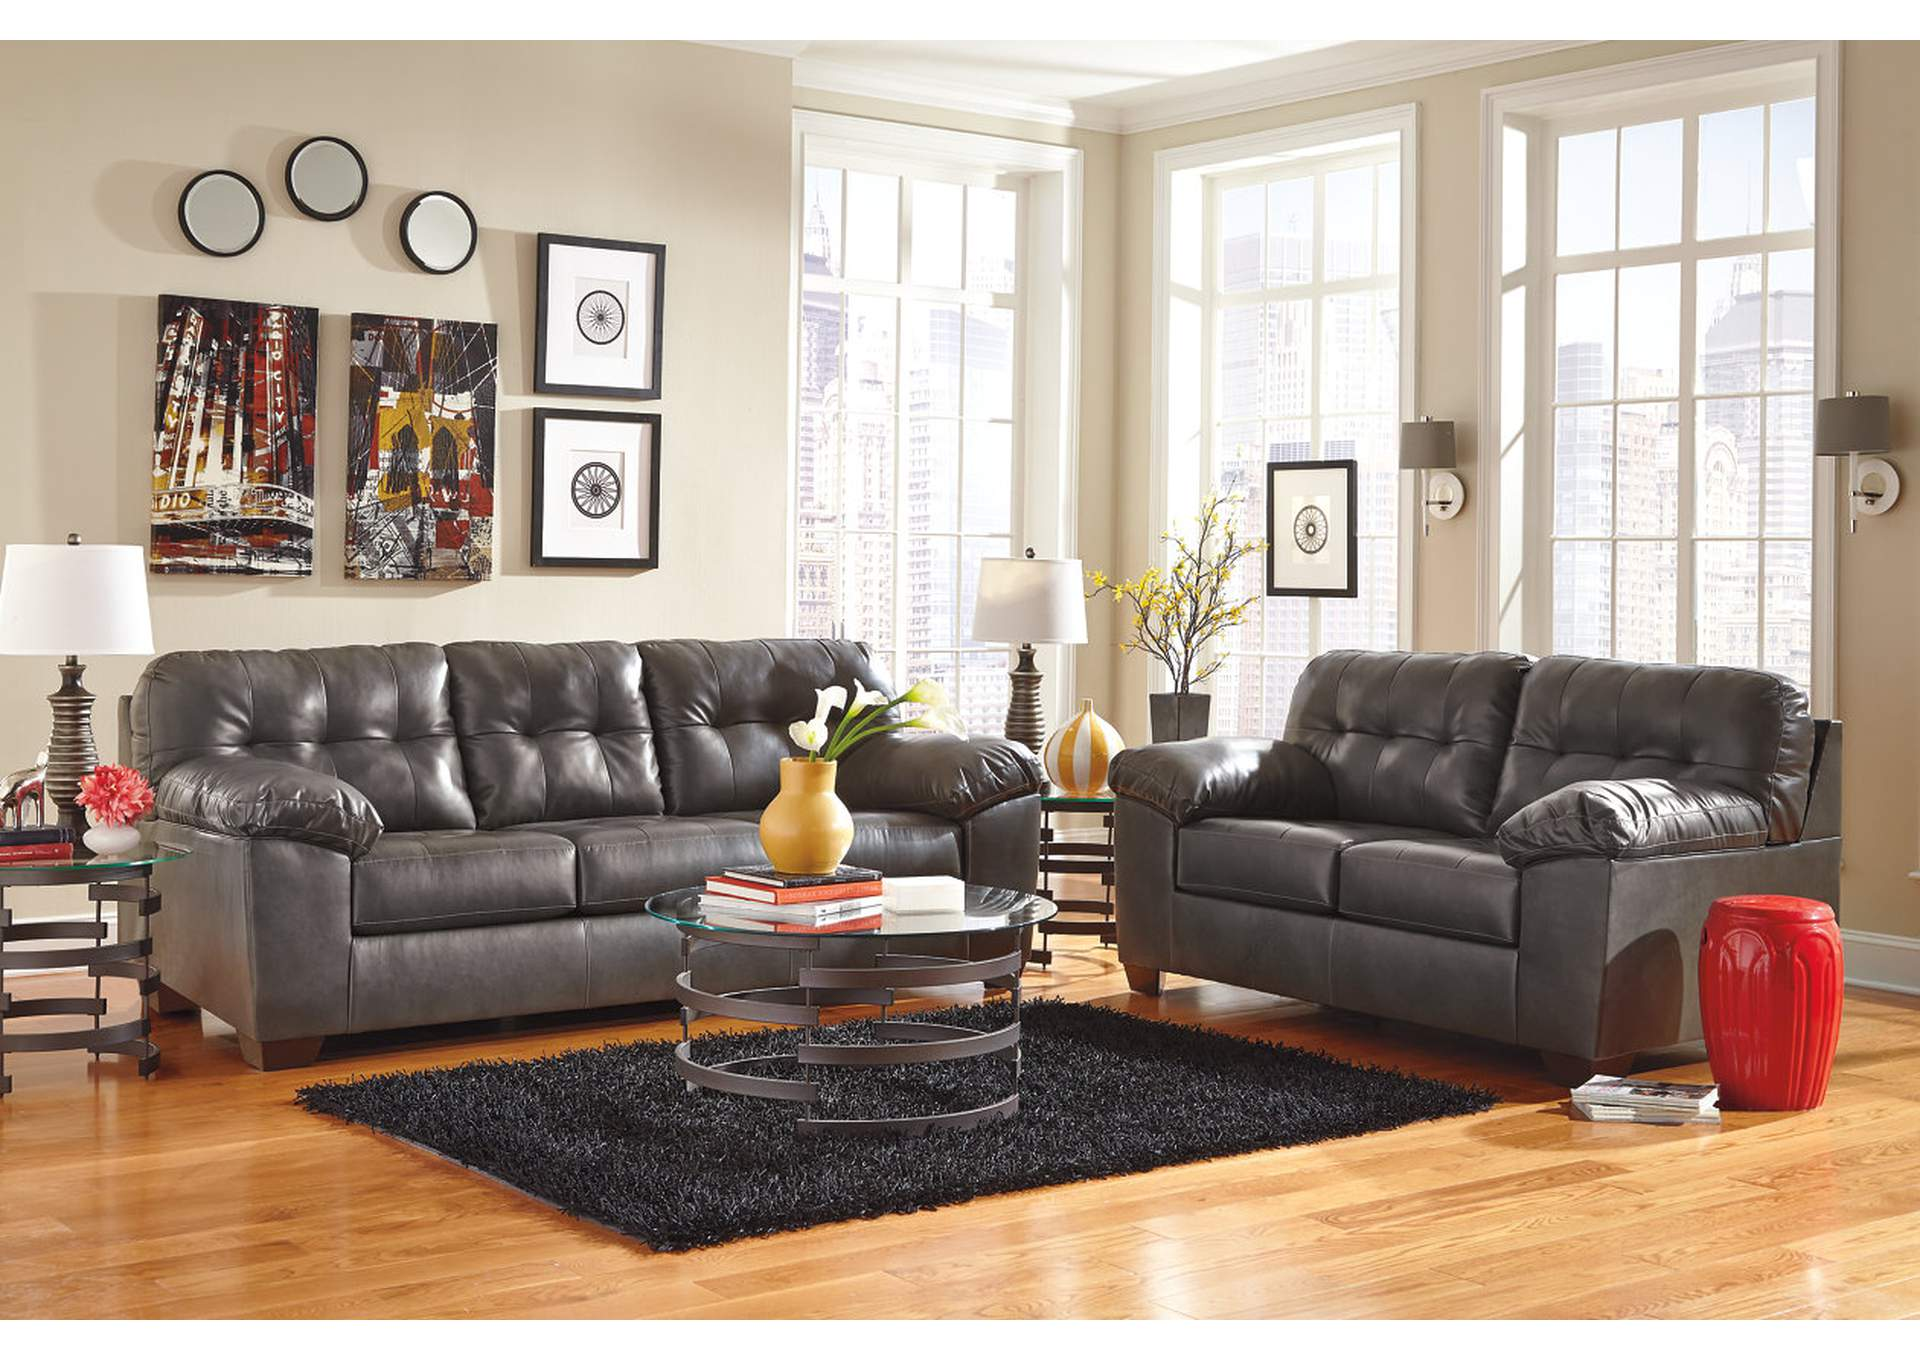 Furniture Liquidators Home Center Alliston DuraBlend Gray